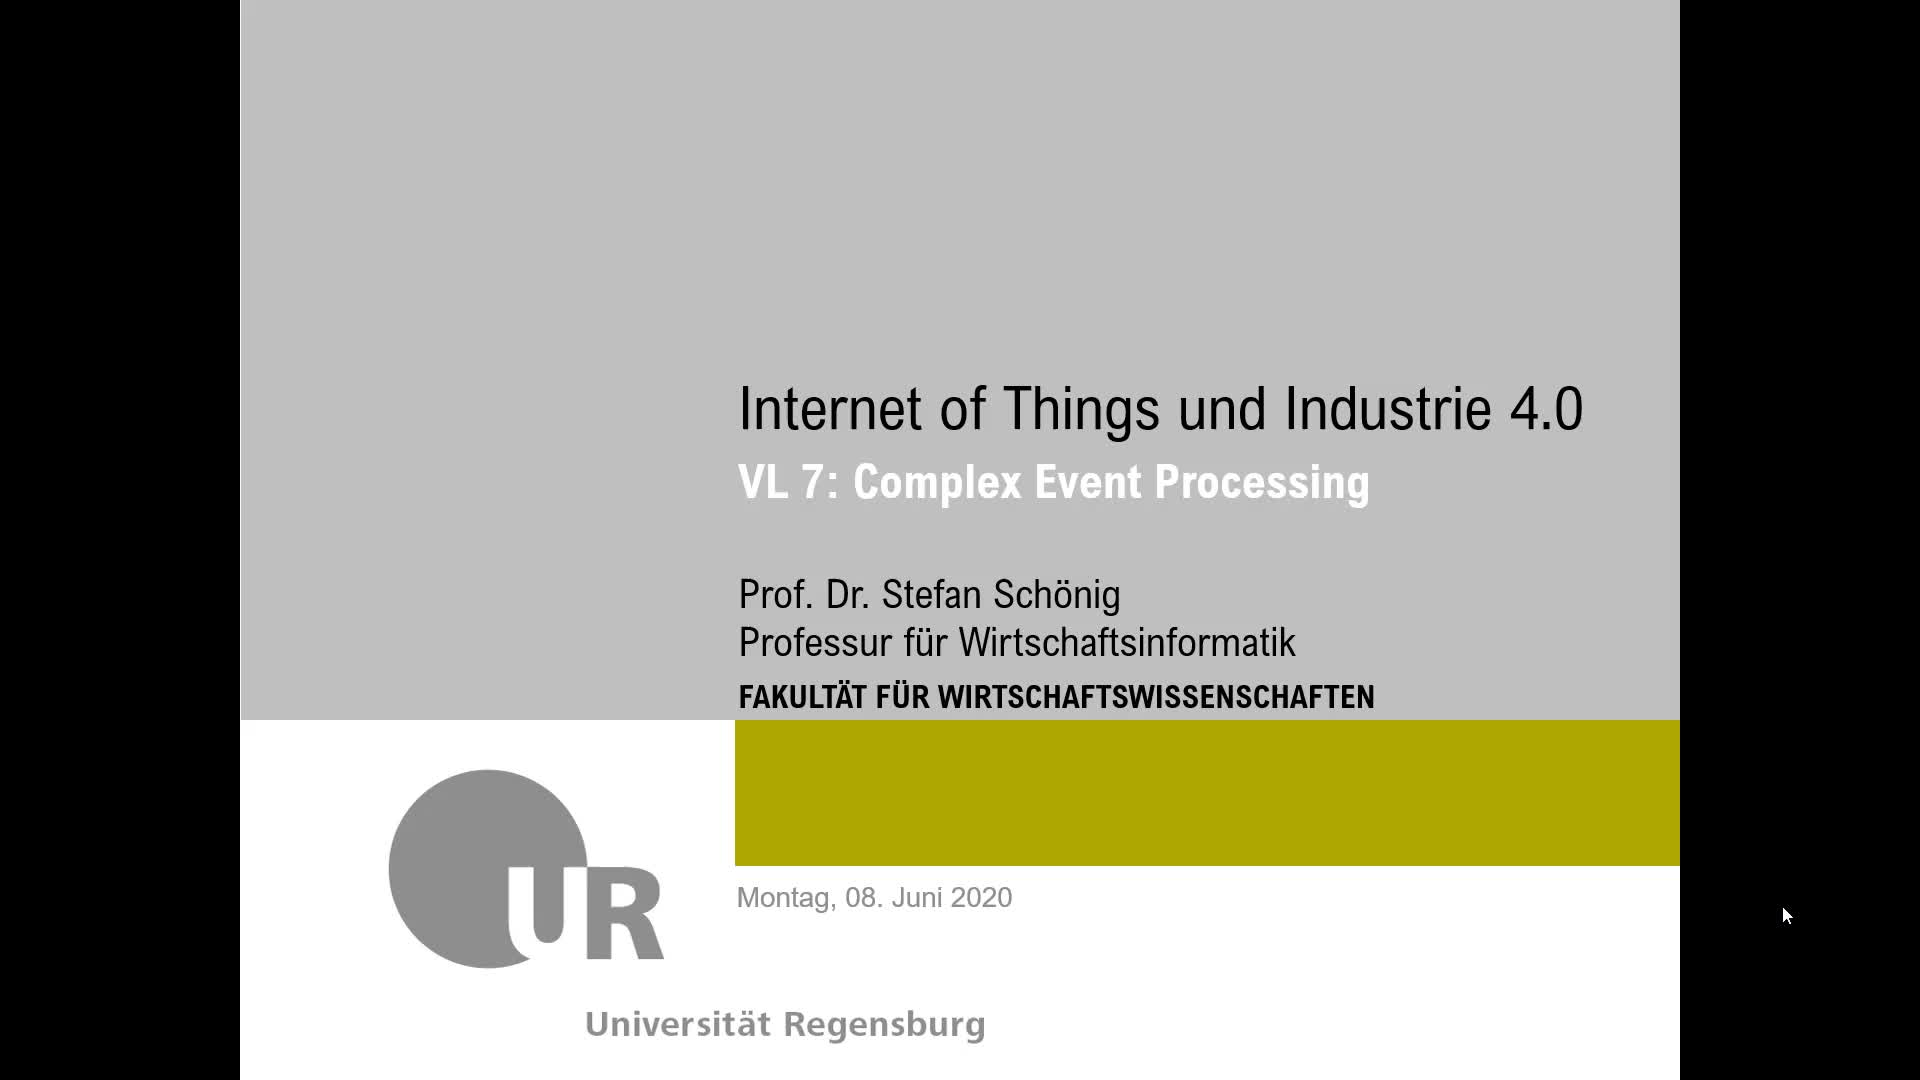 SS 2020 - Internet of Things und Industrie 4.0 - Kapitel 7 (Complex Event Processing - Esper)